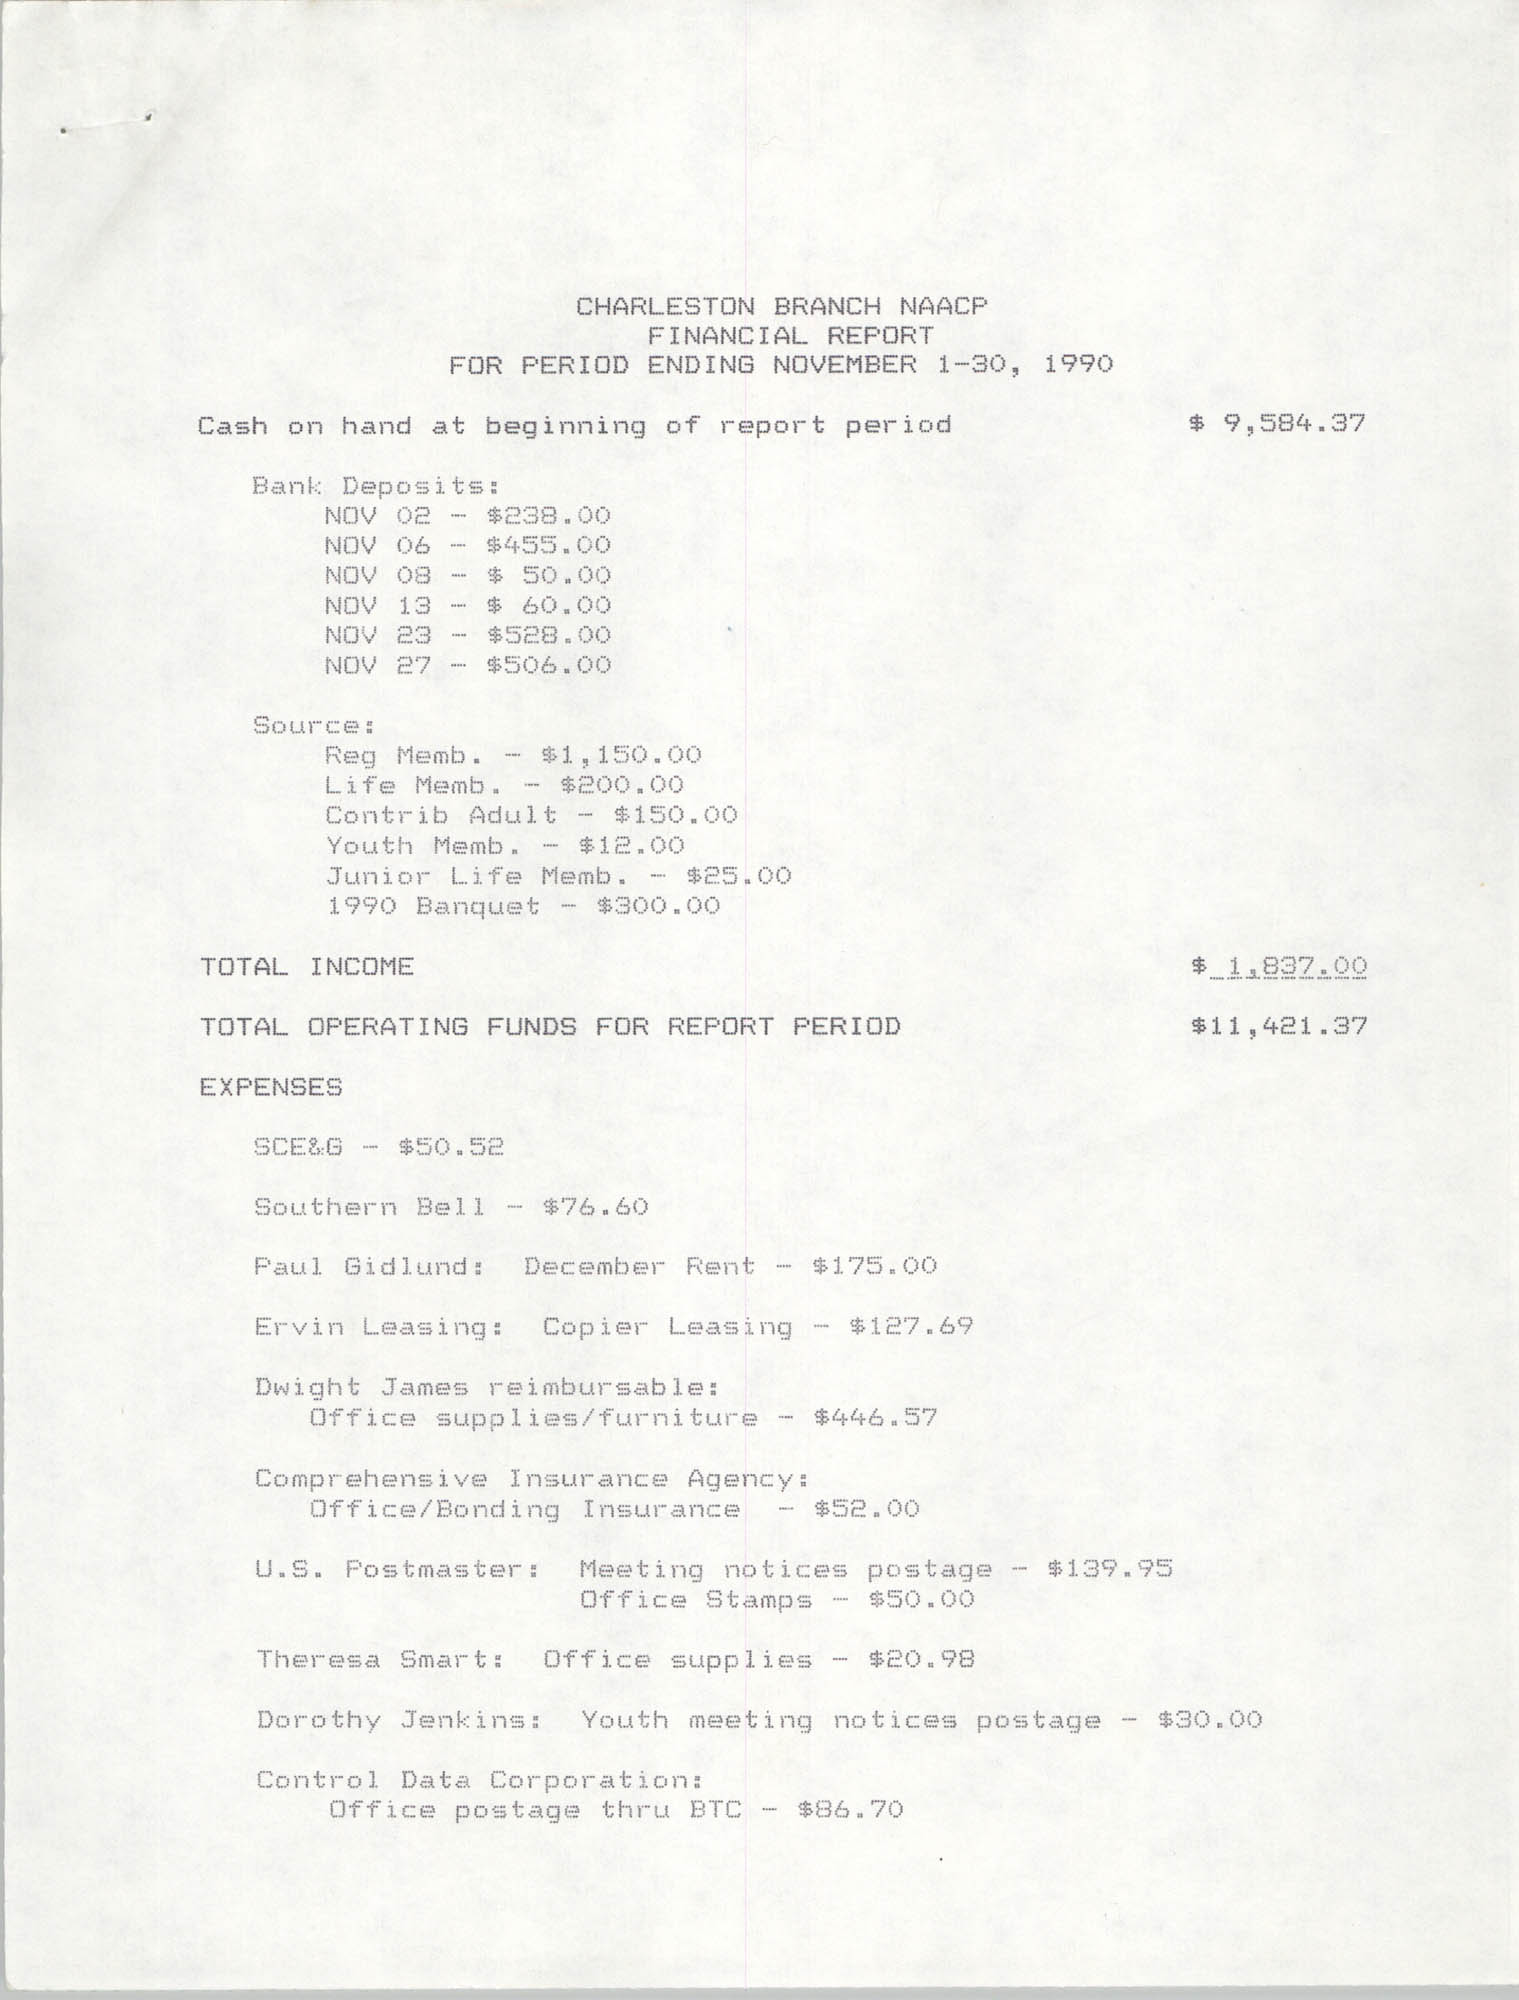 Charleston Branch of the NAACP Financial Report, November 1990, Page 1